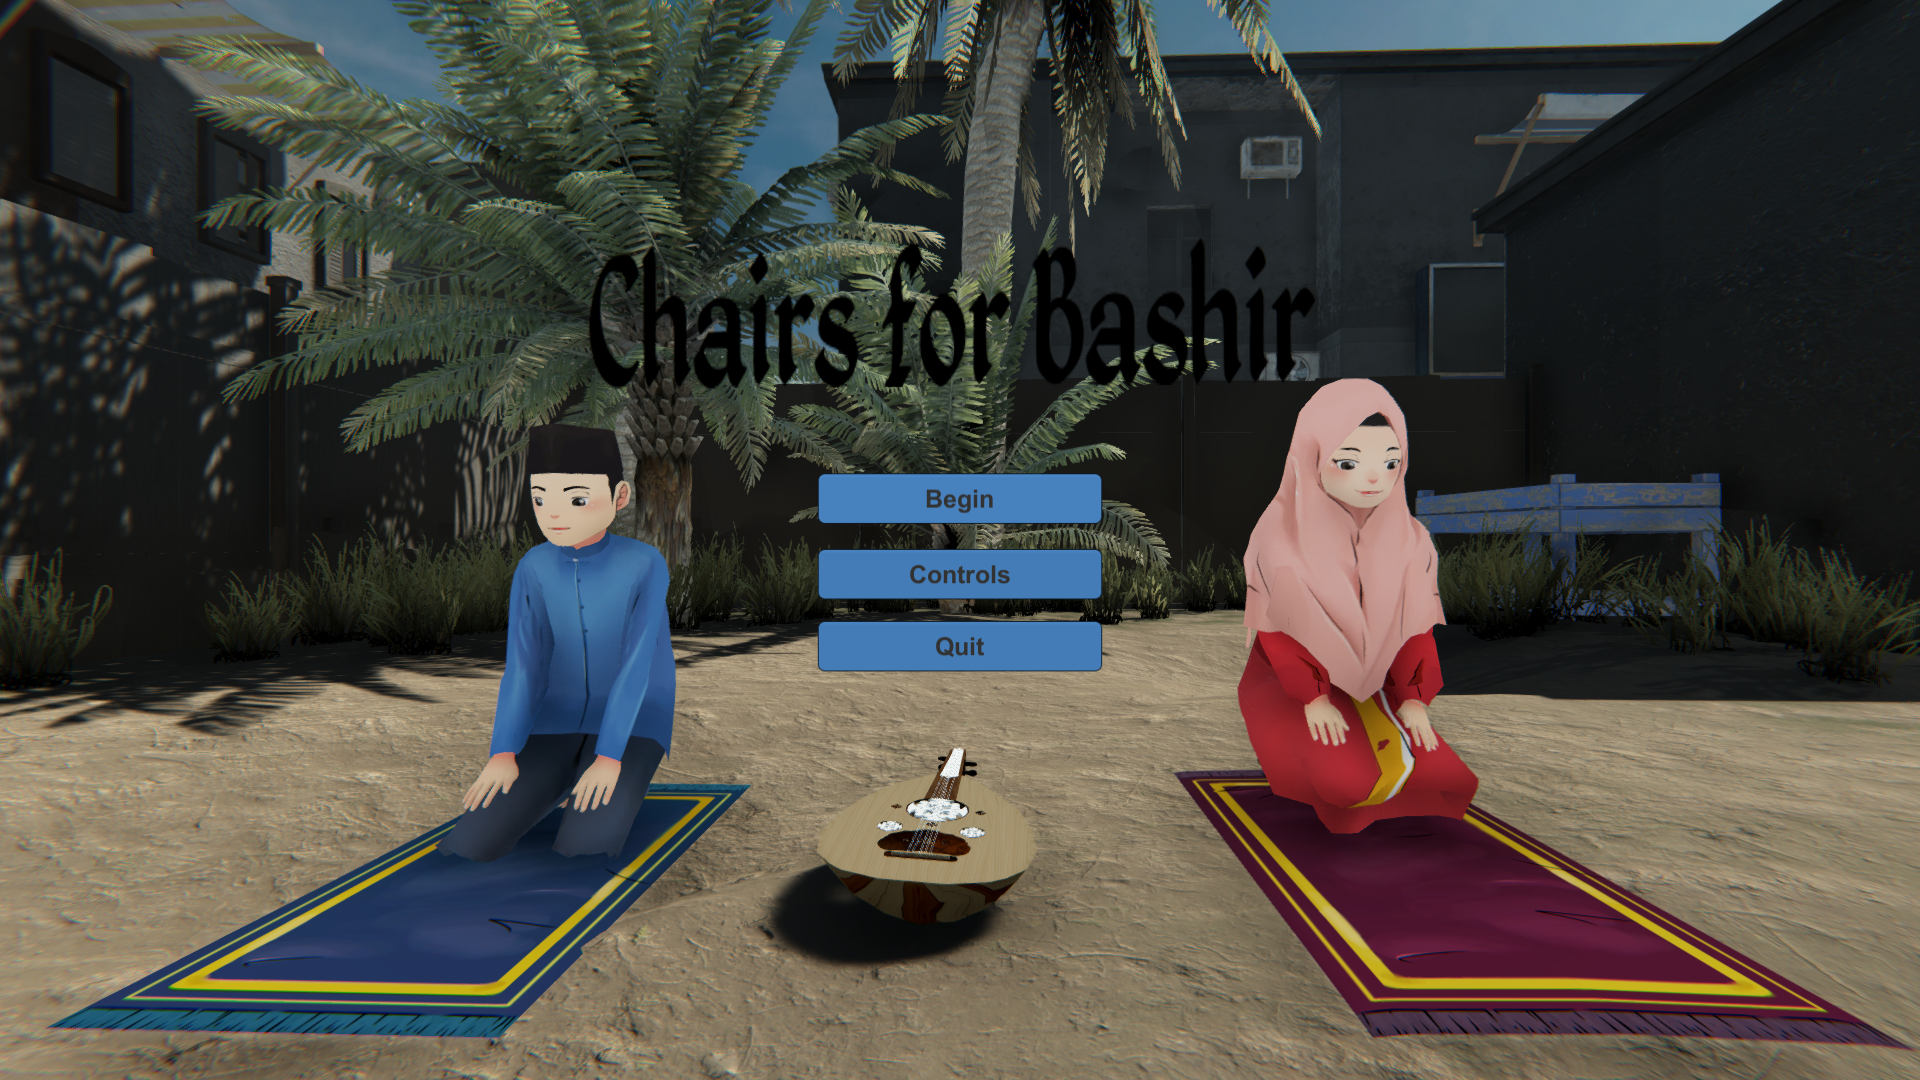 Chairs for Bashir